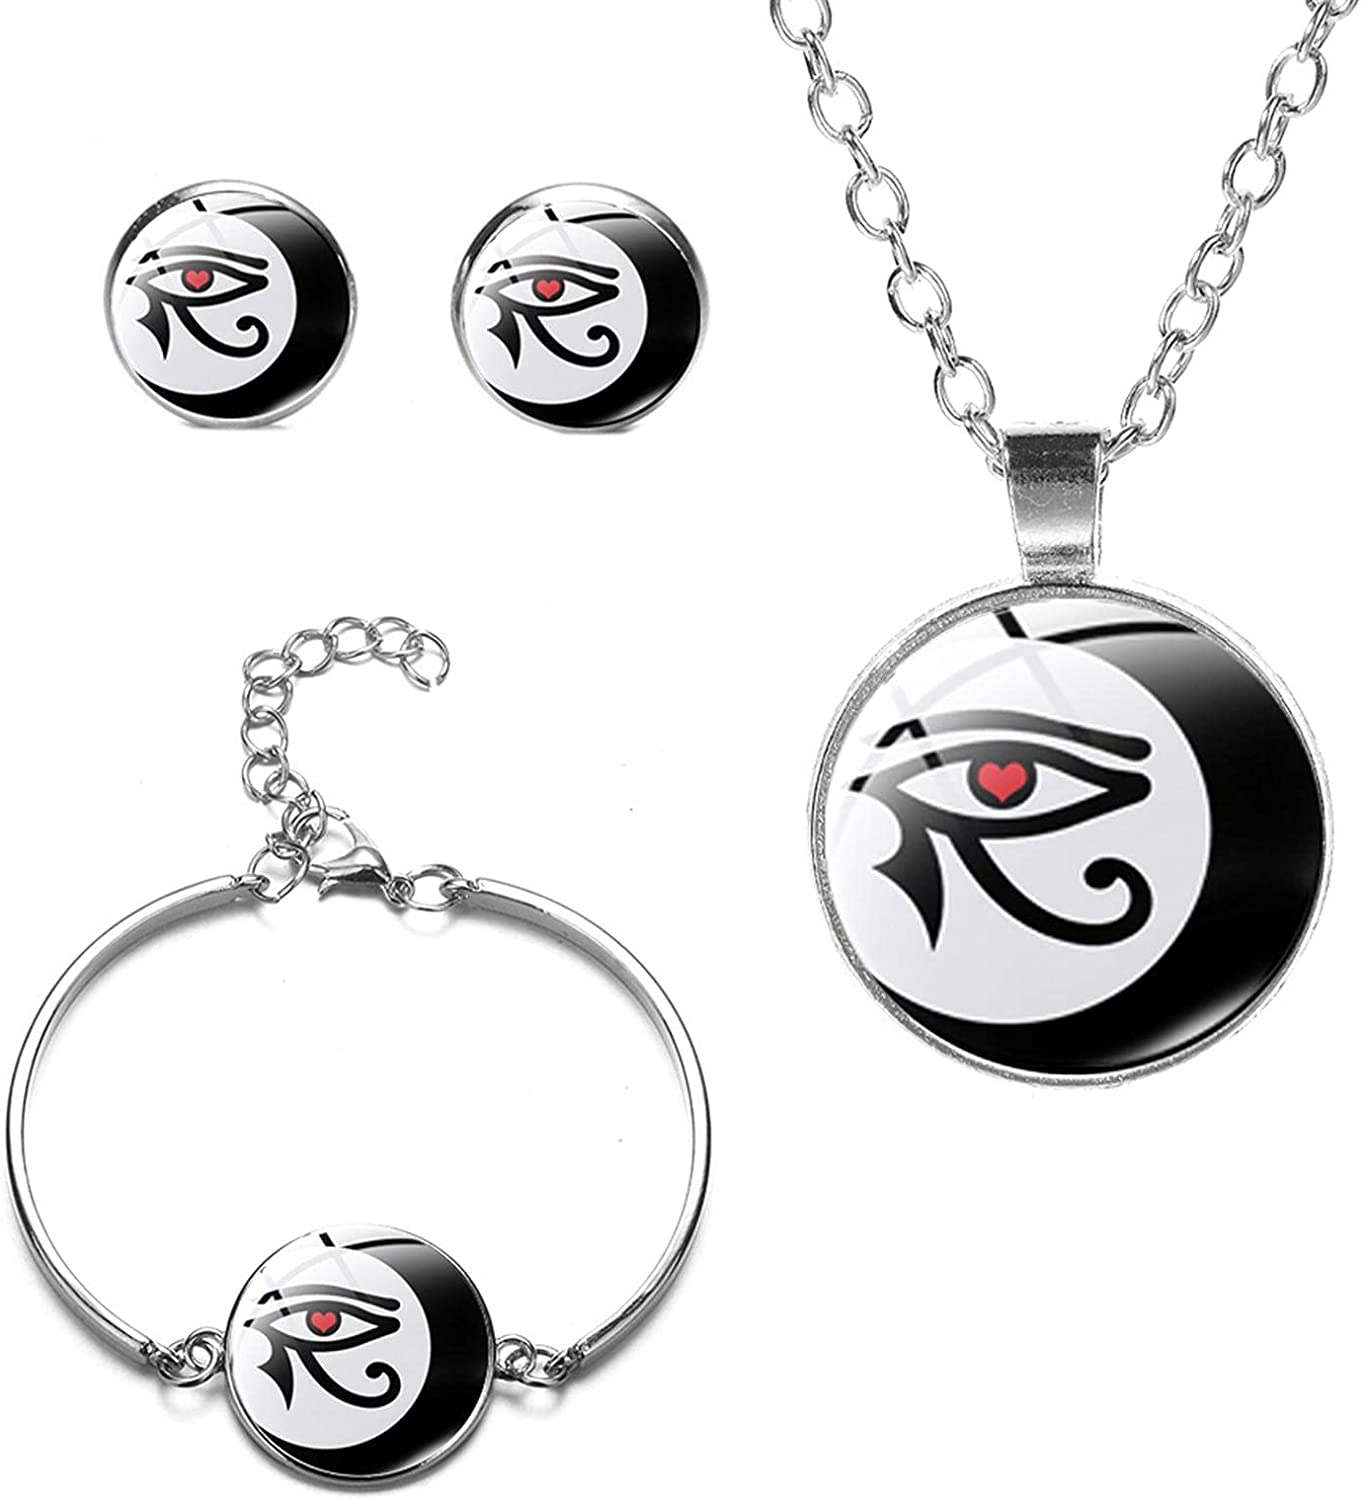 Ancient Egyptian Horus Eye Jewelry Egypt Max 89% OFF Rune Set Glass Evil Free shipping anywhere in the nation